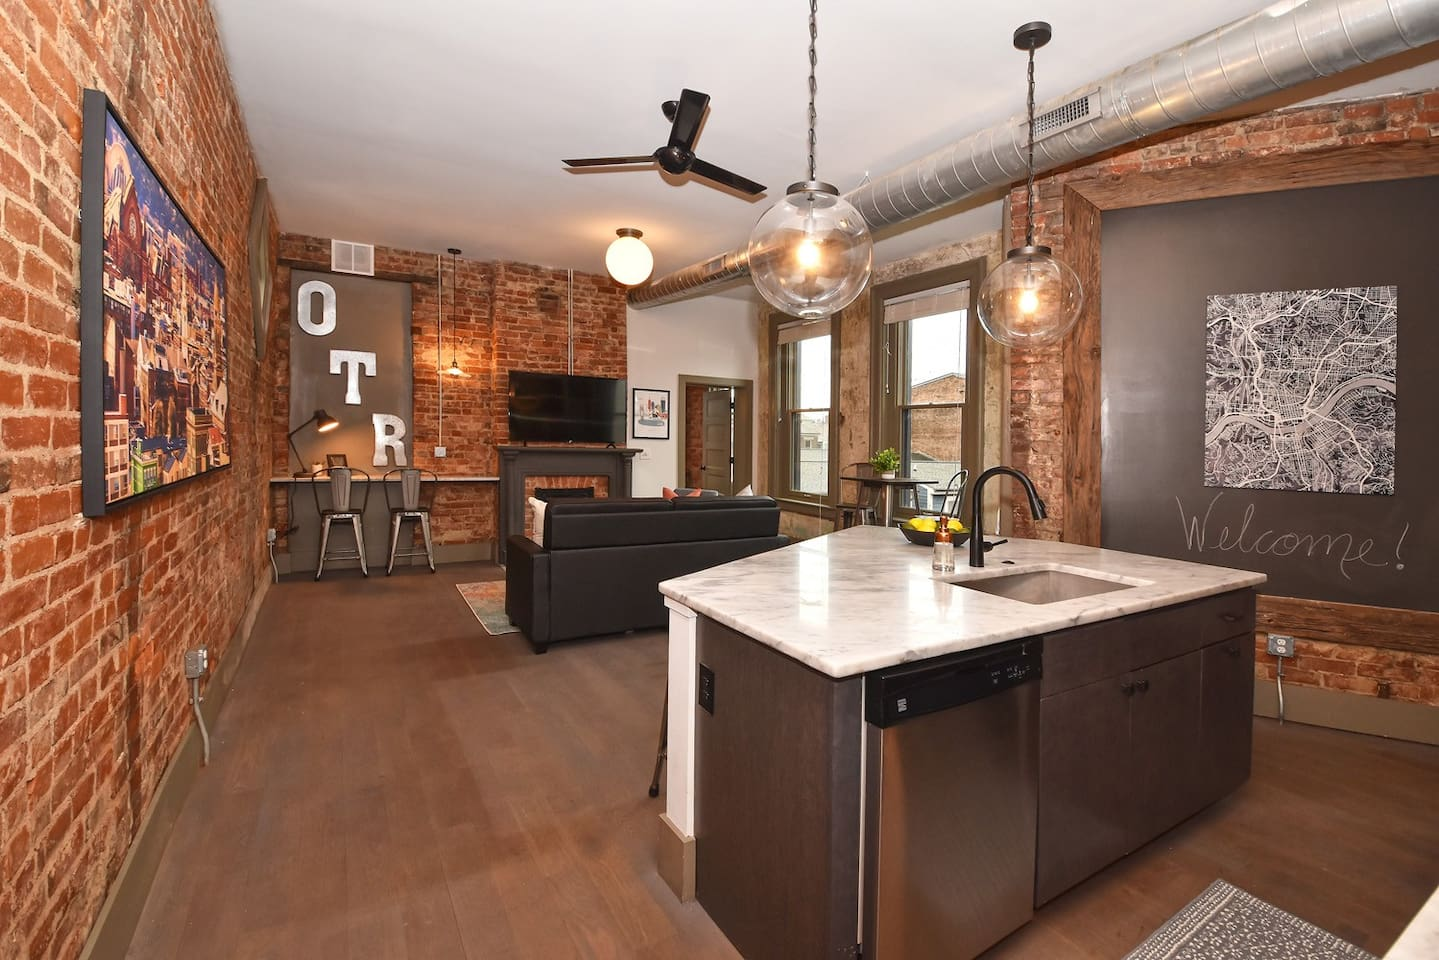 STUNNING Renovation! Everything is updated throughout the entire condo!